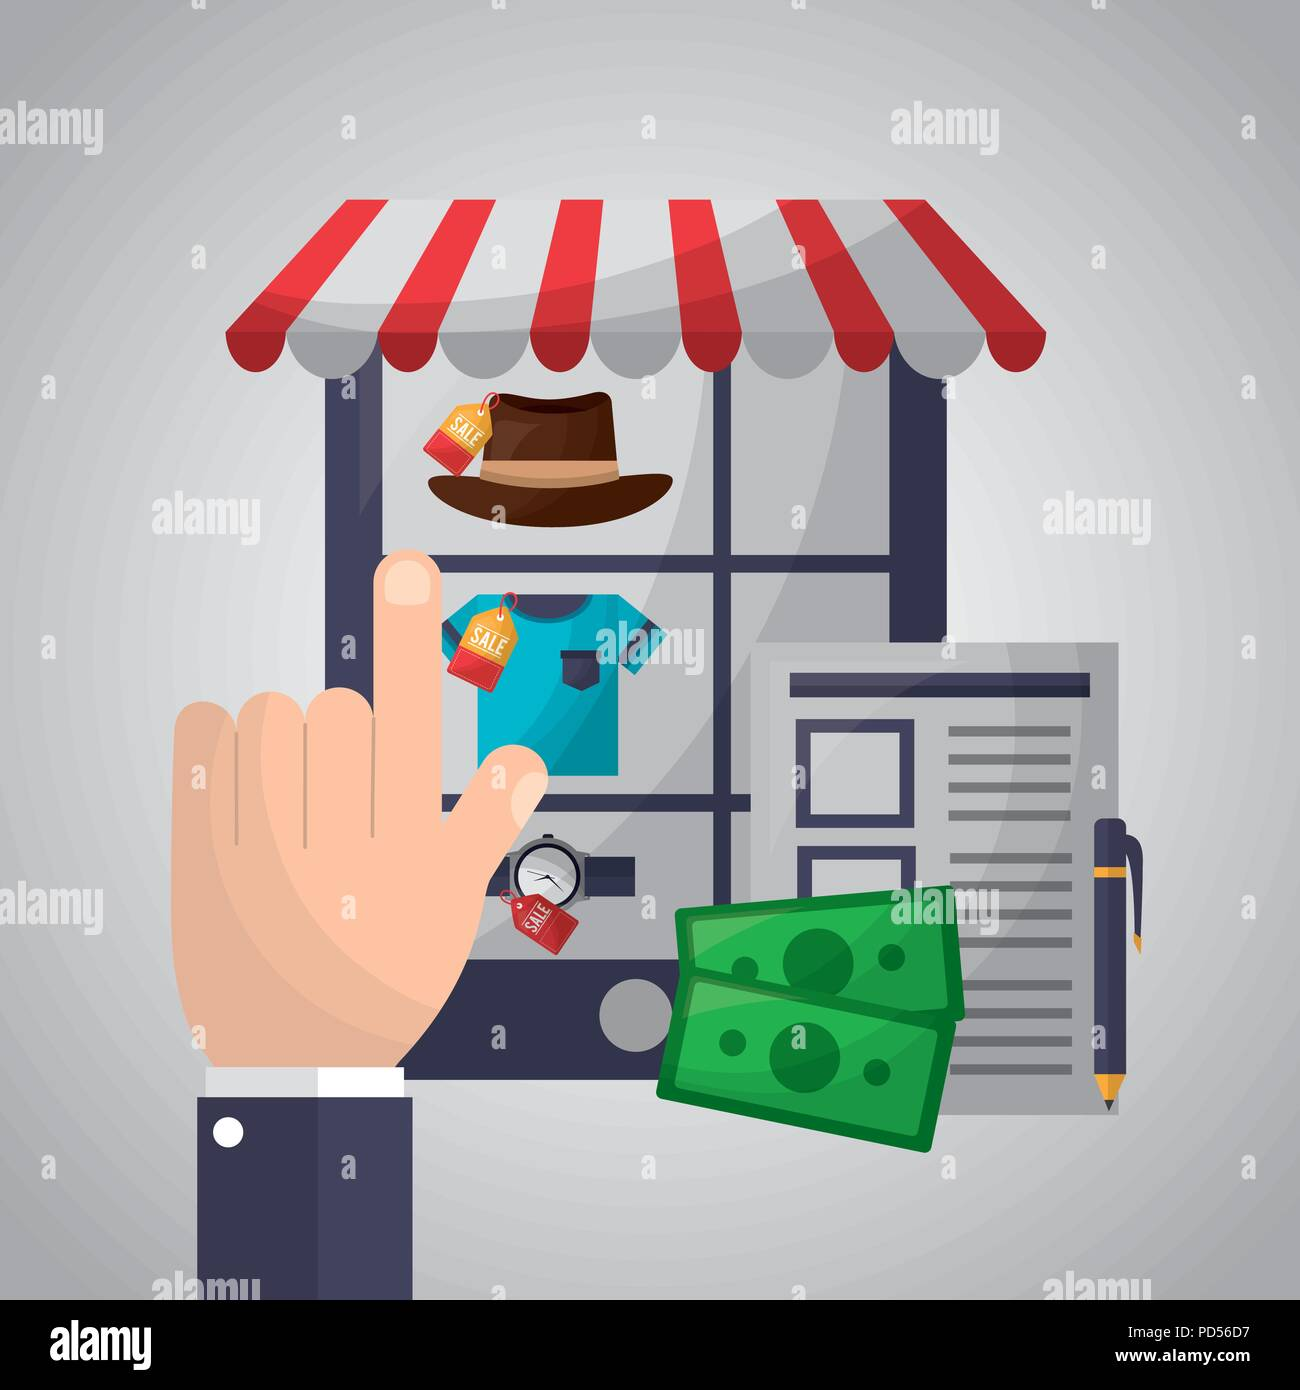 online shopping card - Stock Image